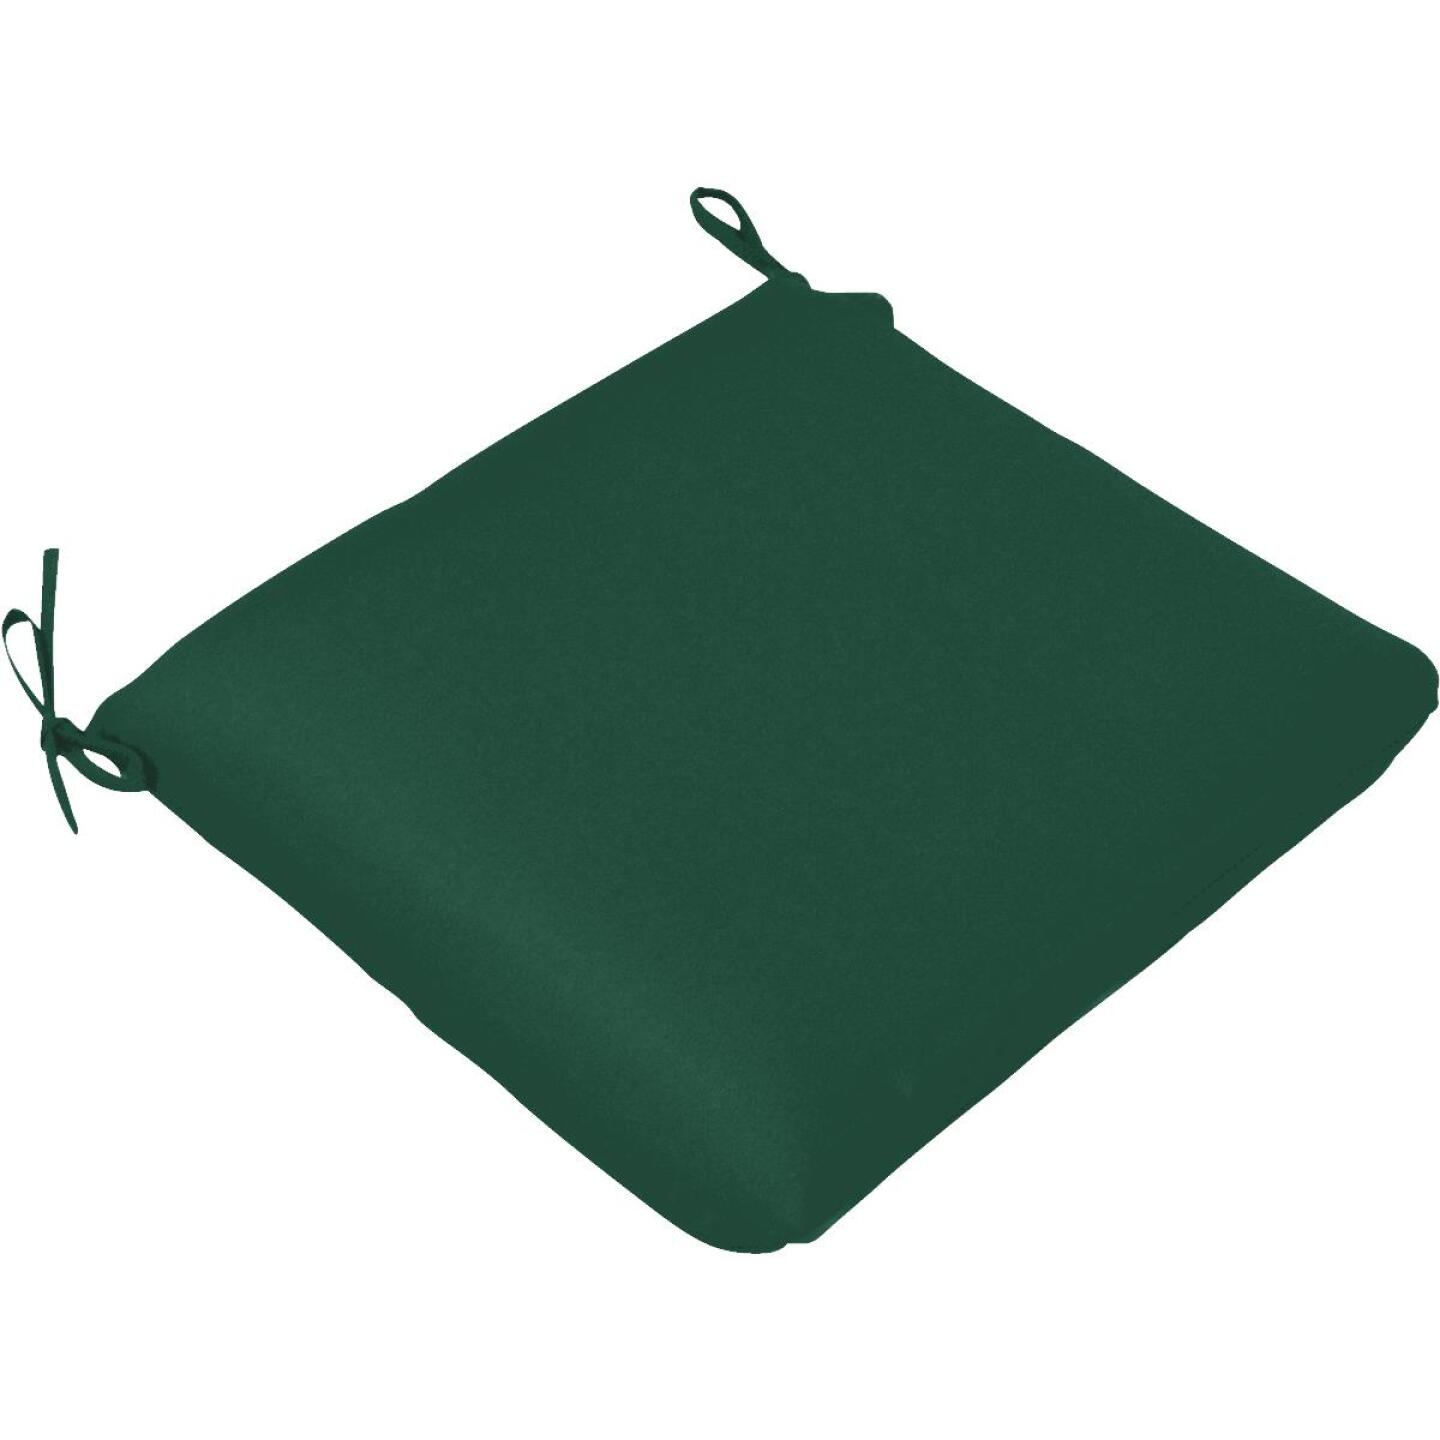 Casual Cushion 19 In. W. x 2 In. H. x 18 In. D. Green Chair Cushion Image 1